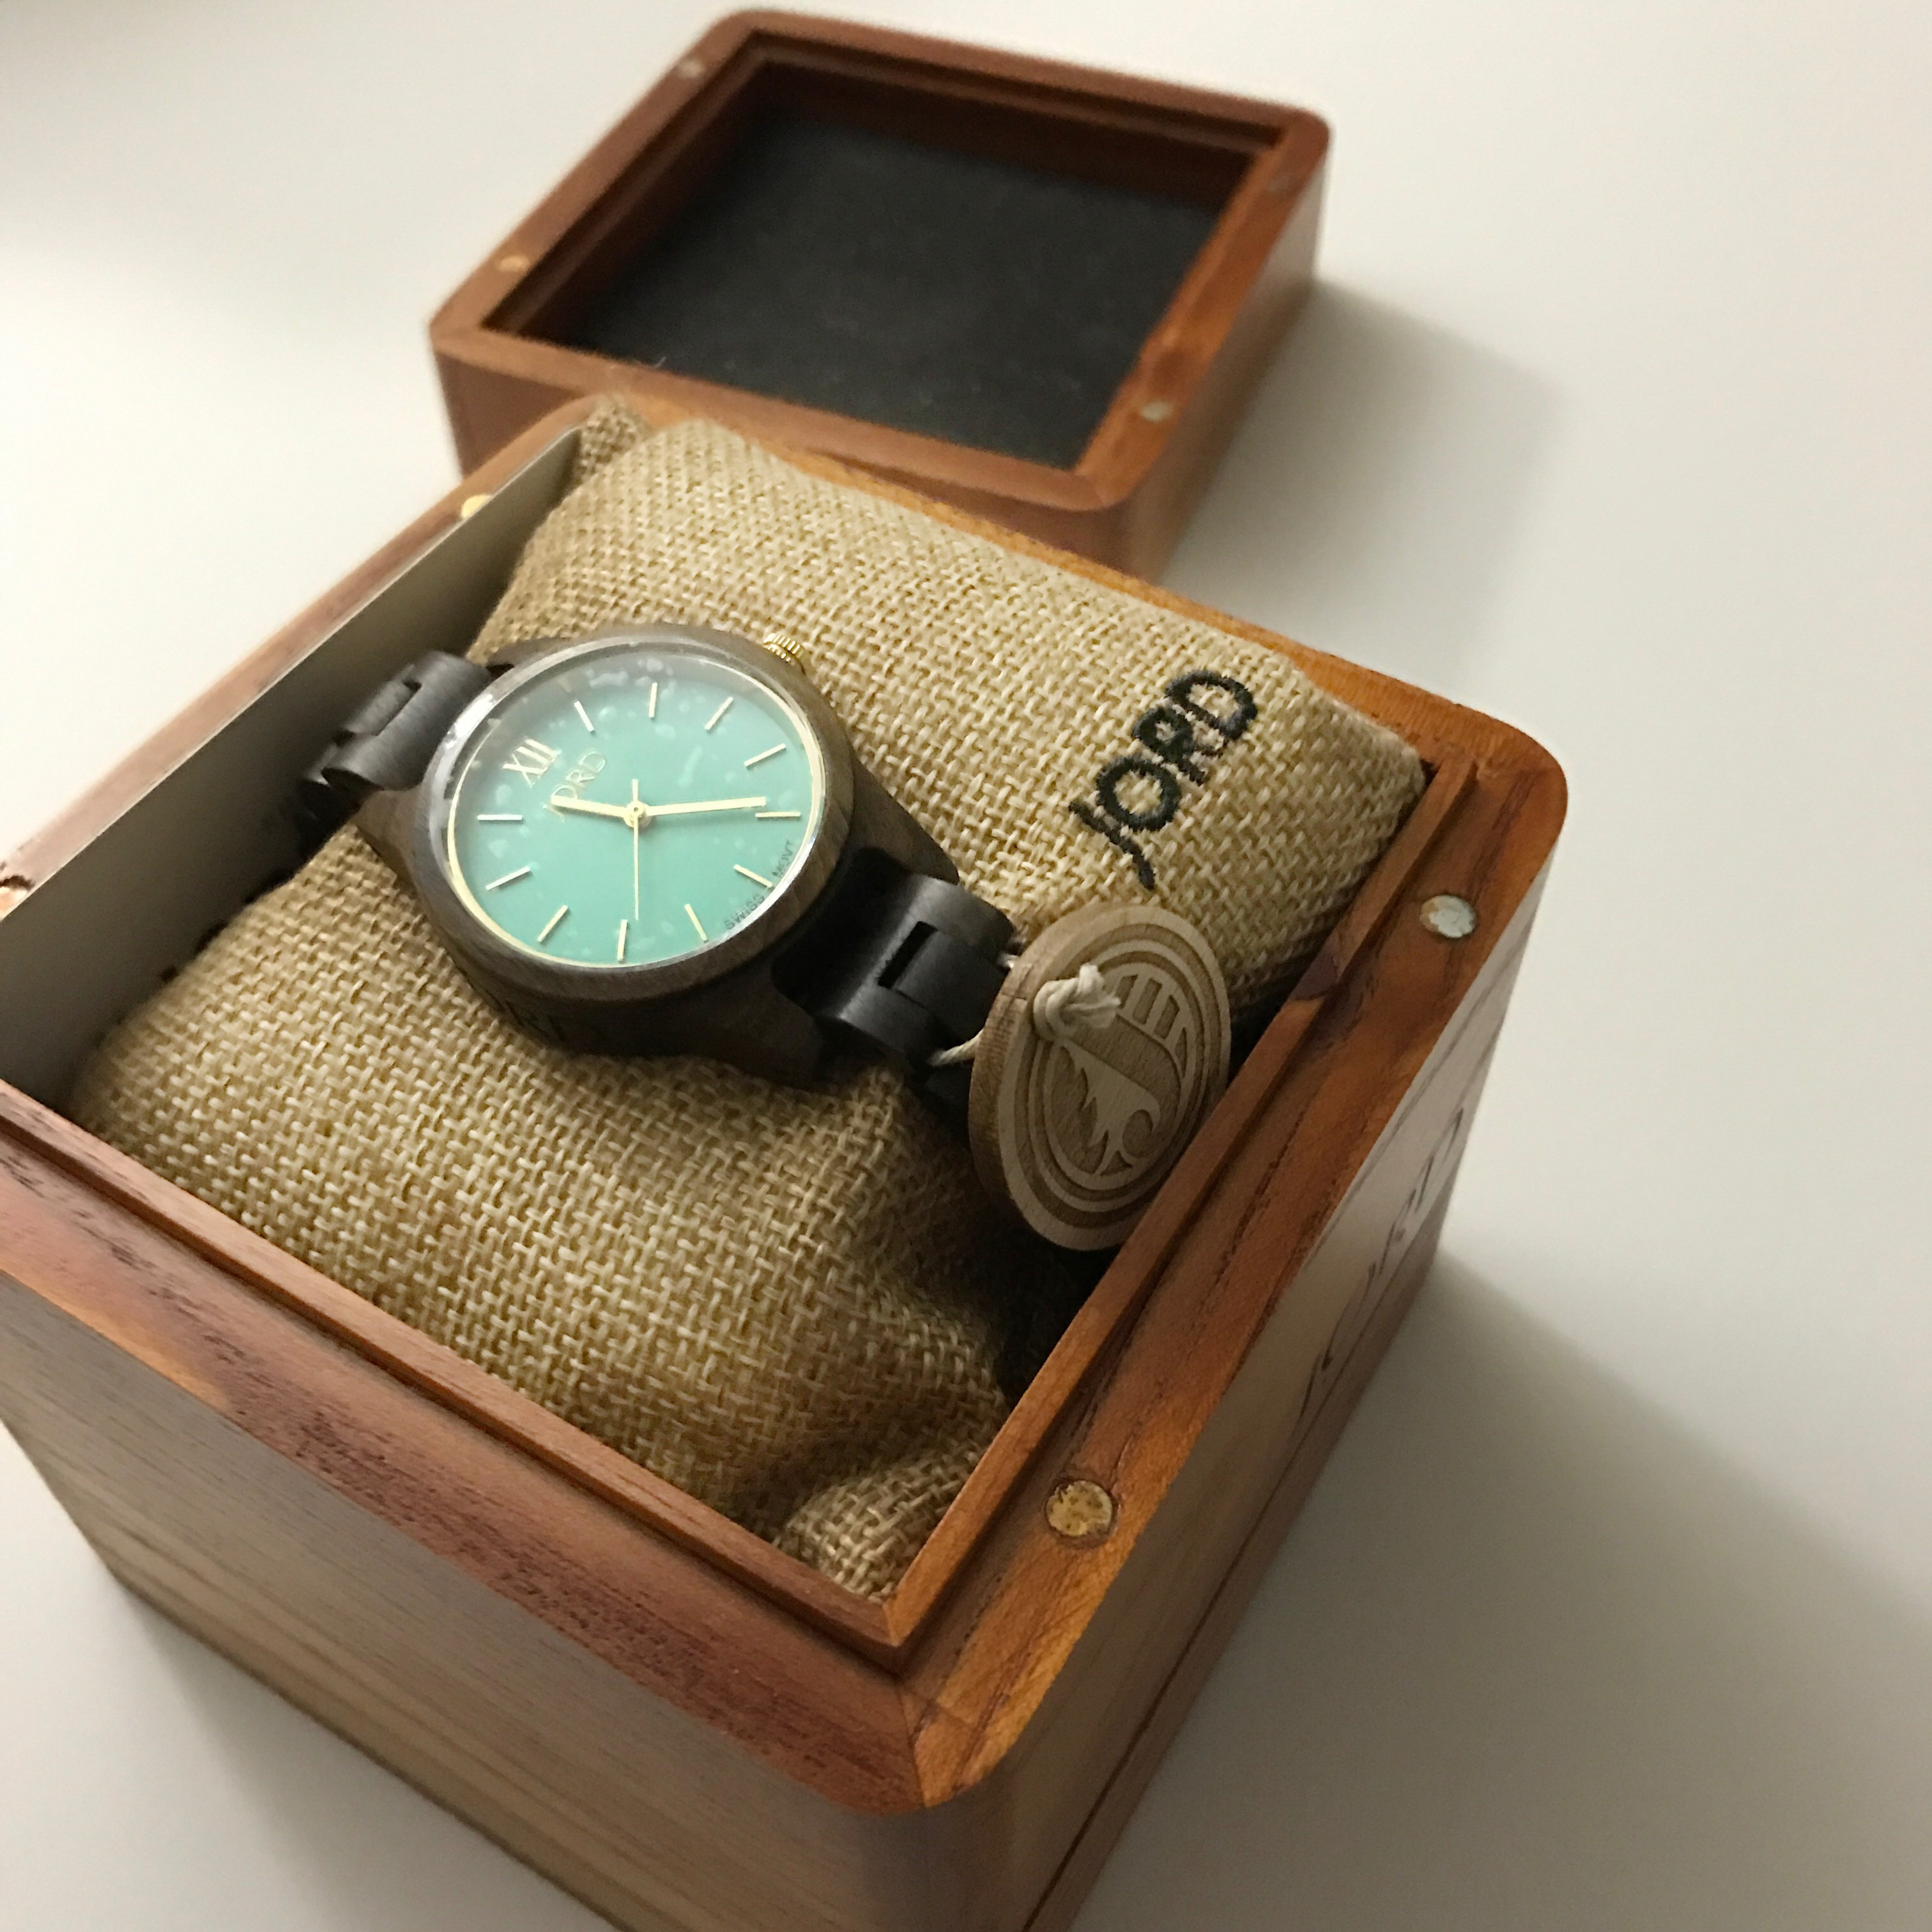 Jord Wood Watch Box | She Be Knowin